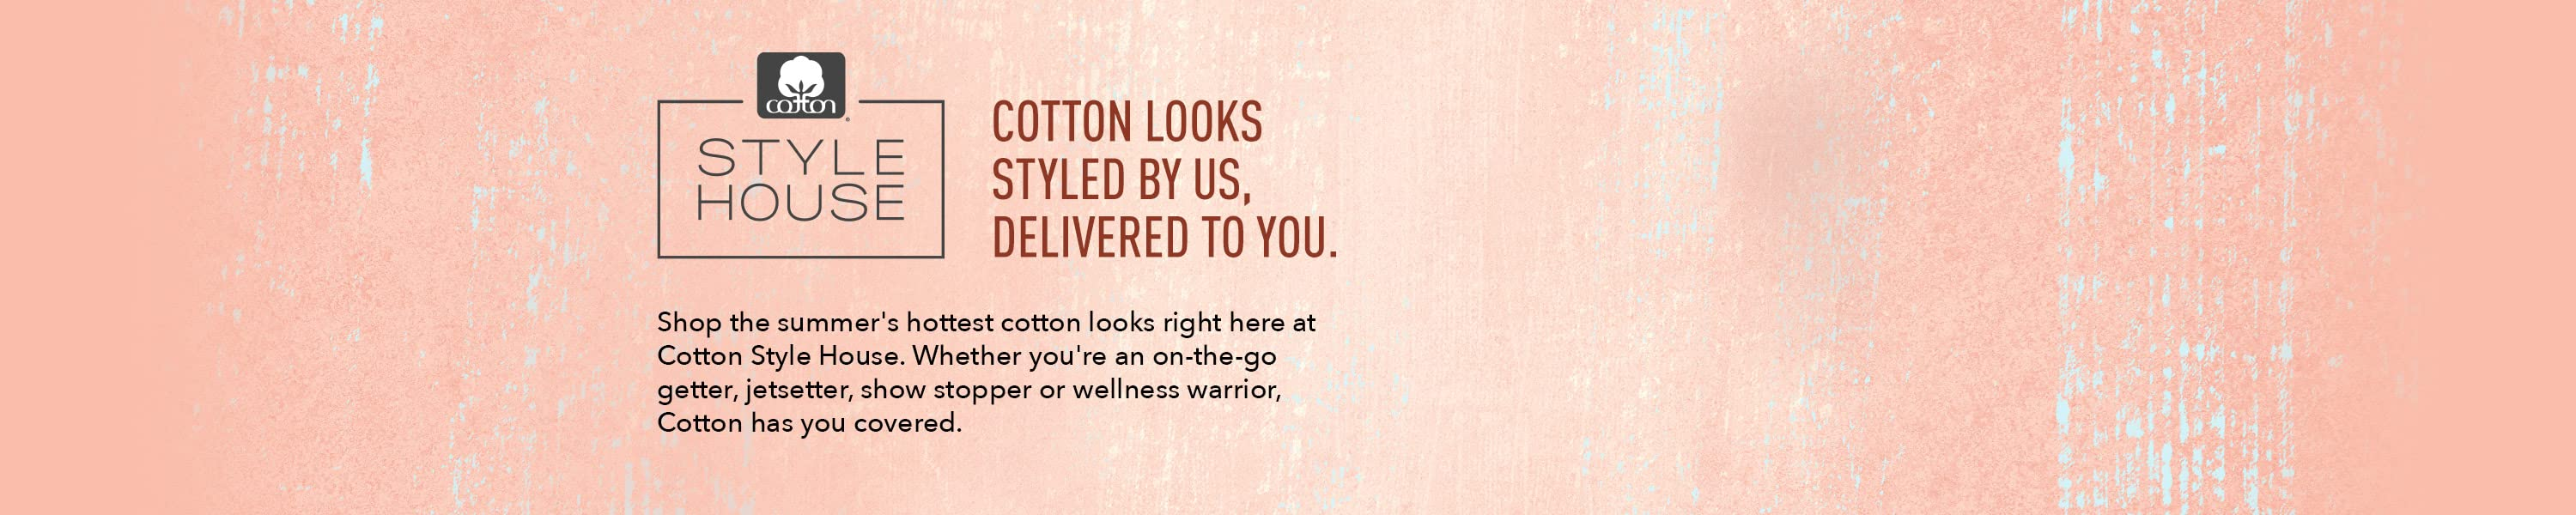 Cotton Style House. Cotton looks styled by us, delivered to you. Shop the summer's hottest cotton looks right here at Cotton Style House. Whether you're an on-the-go getter, jetsetter, show stopper or wellness warrior, Cotton has you covered.    Play video.